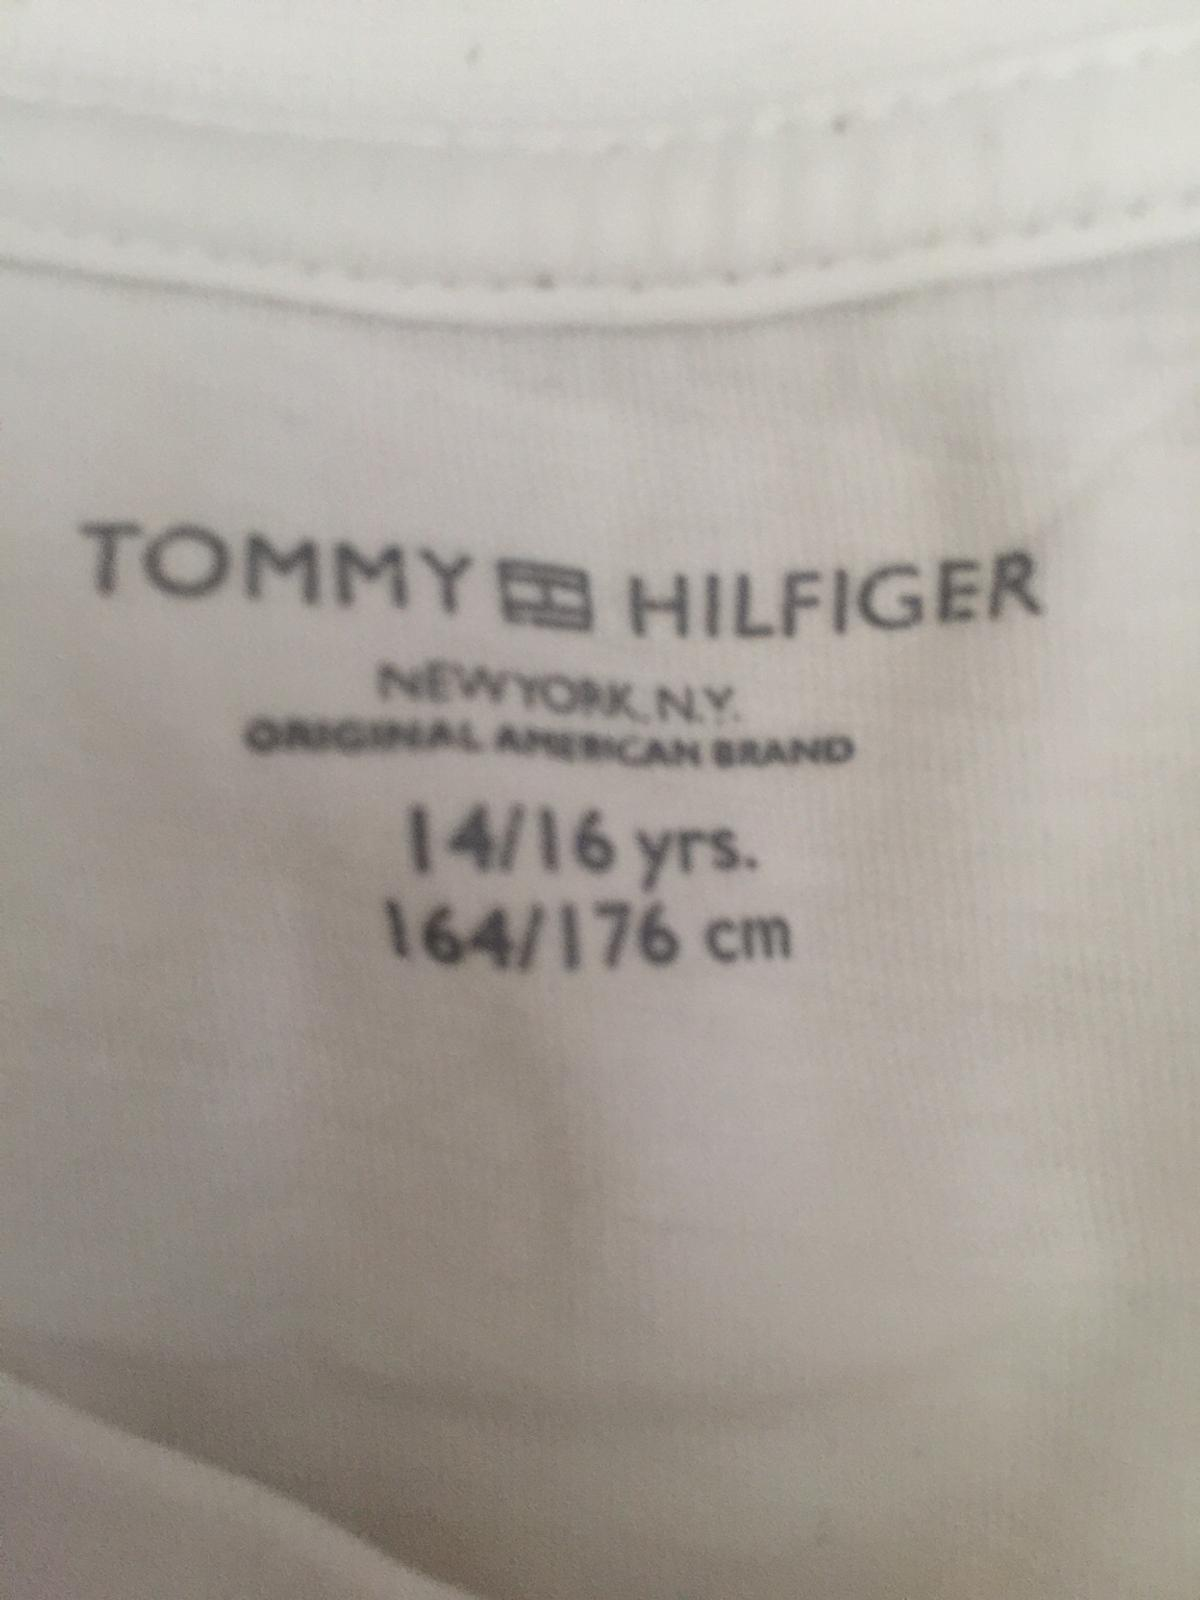 61c09eba11def Genuine Tommy Hilfiger in DY4 Sandwell for £5.00 for sale - Shpock